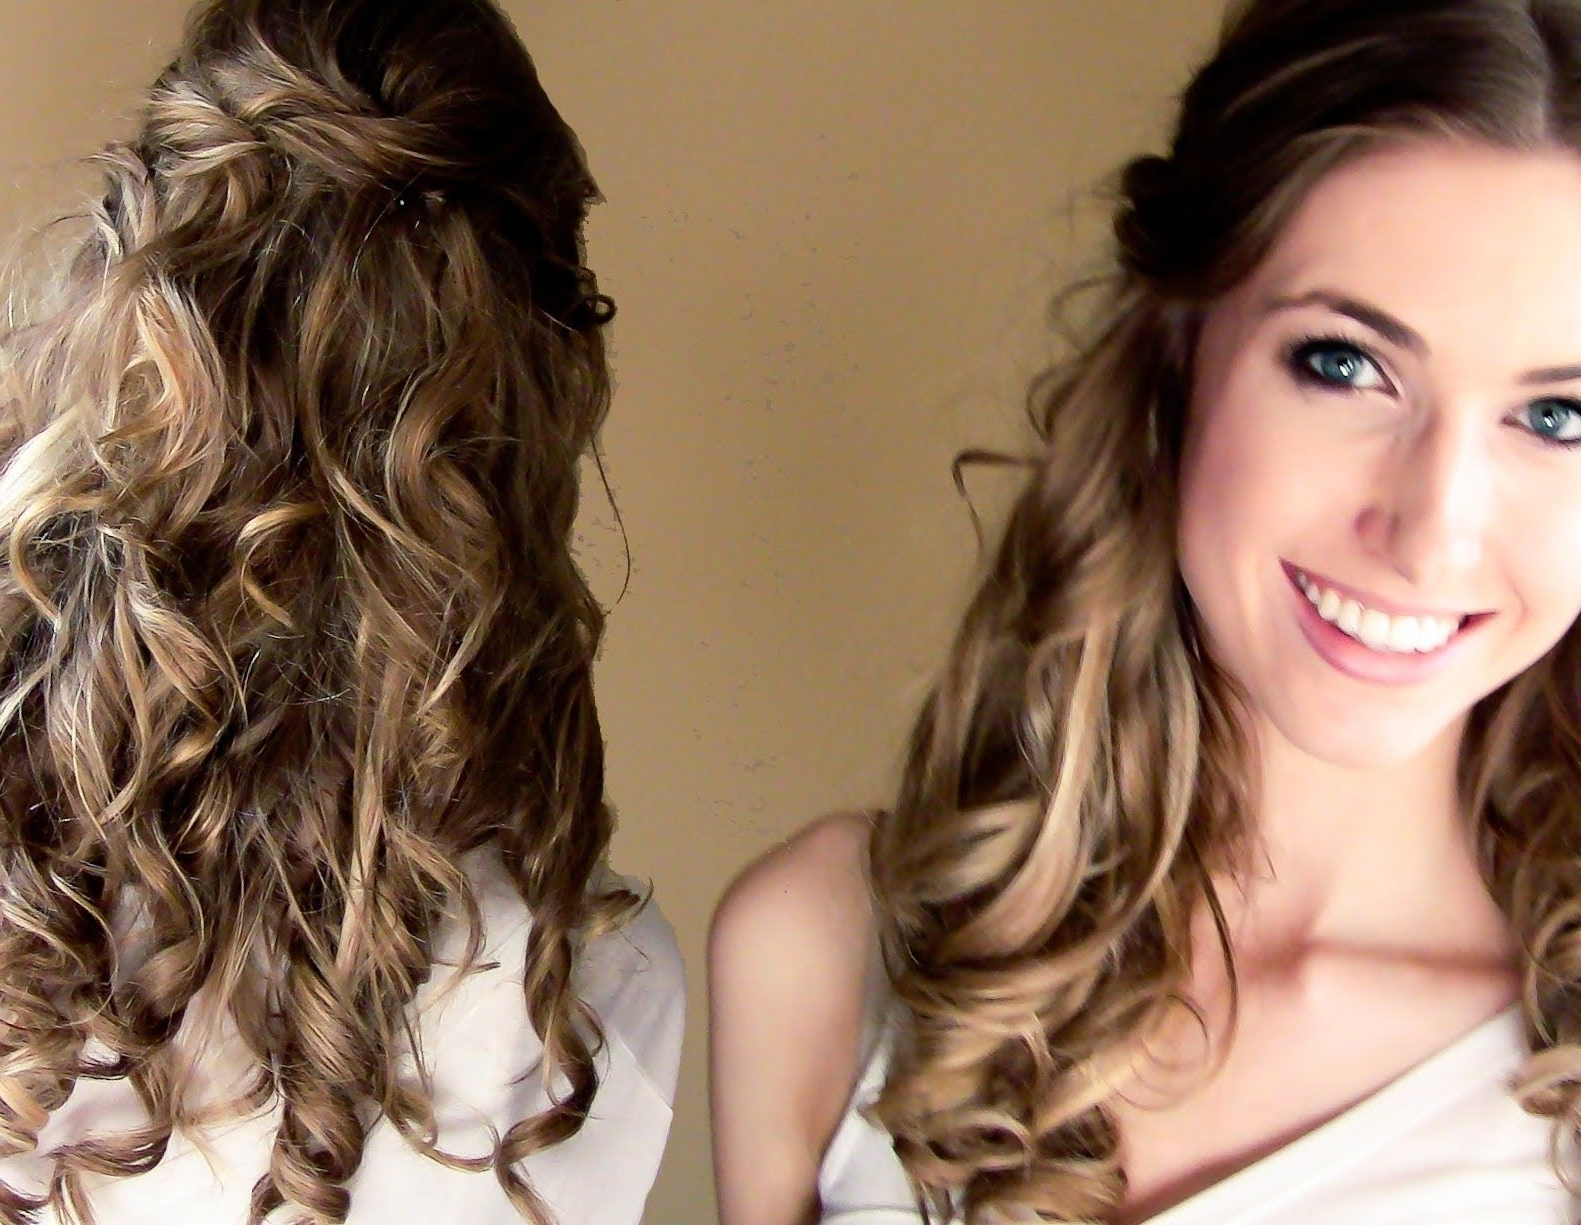 Simple Diy Wedding Hairstyle #weddinghair #budgetwedding With Regard To Well Known Diy Wedding Guest Hairstyles (View 11 of 15)